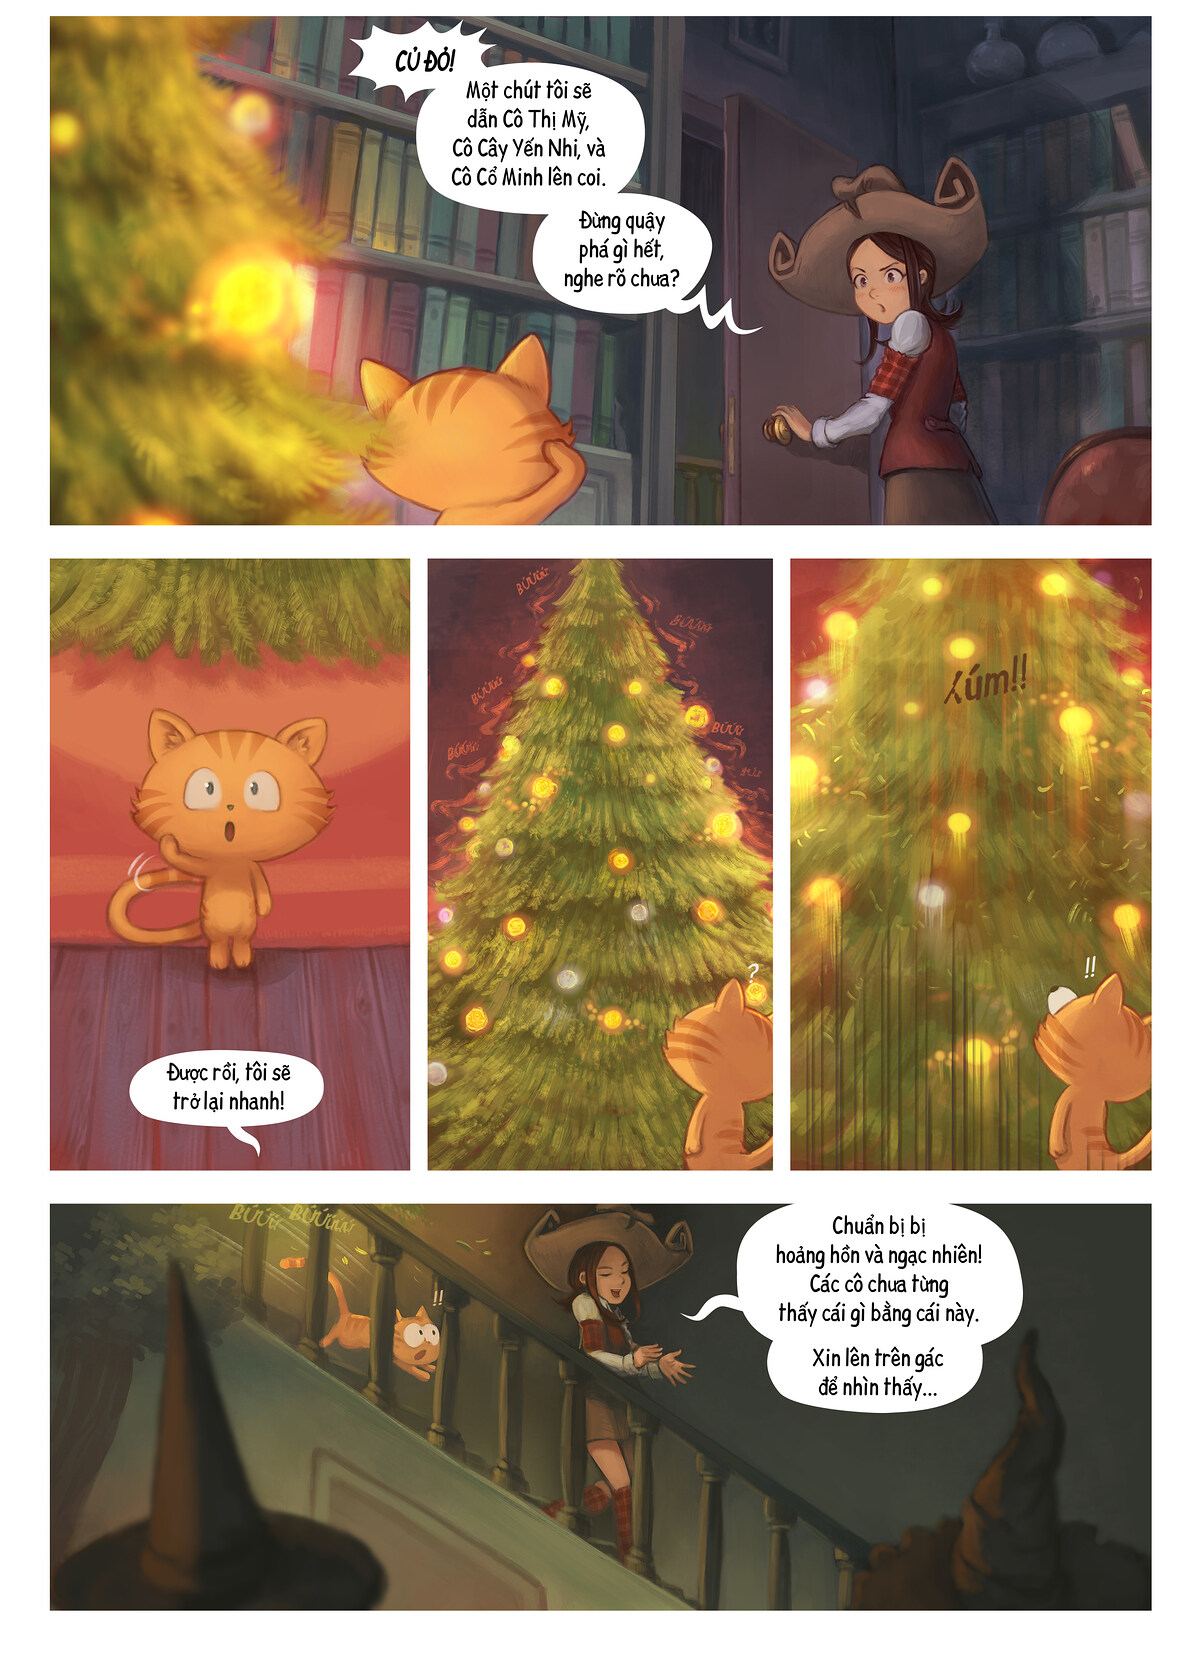 A webcomic page of Pepper&Carrot, Tập 24 [vi], trang 6